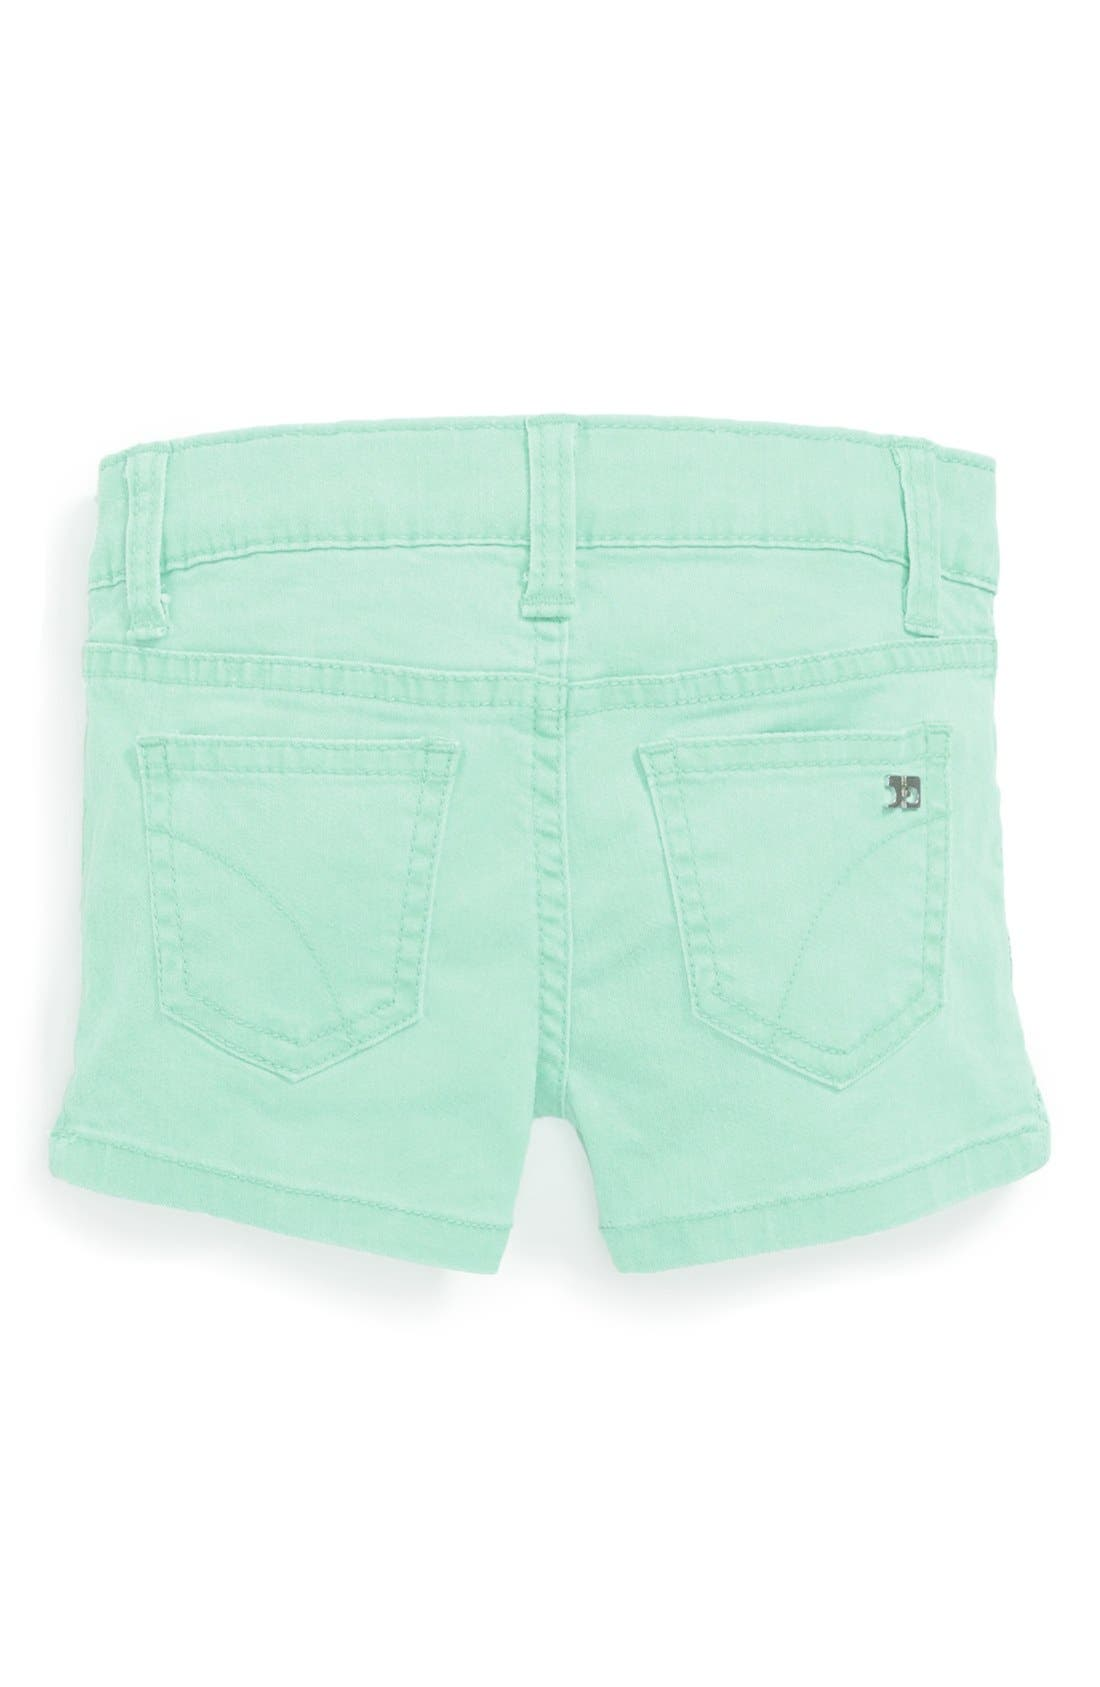 Alternate Image 1 Selected - Joe's Neon Shorts (Toddler Girls)